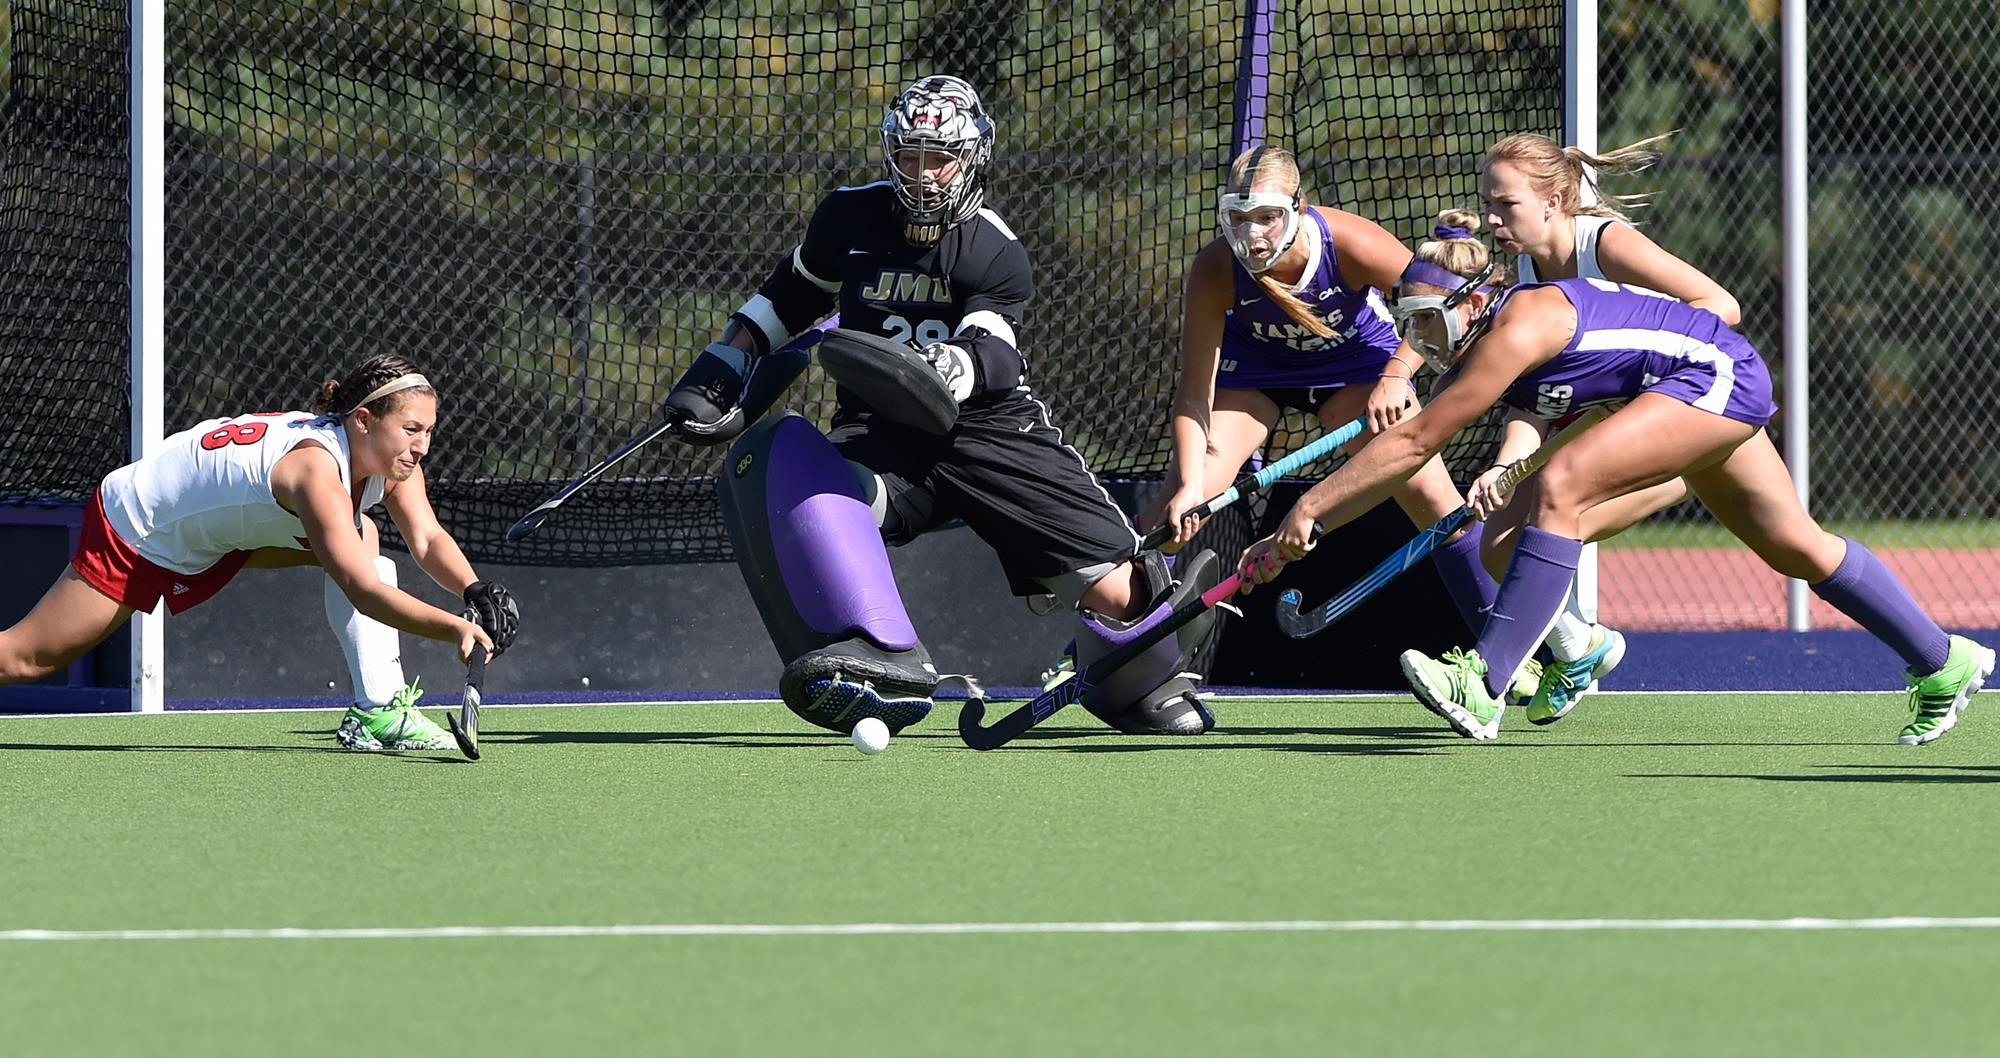 Field Hockey: No. 17 JMU Drops 4-2 Decision to No. 7 Louisville